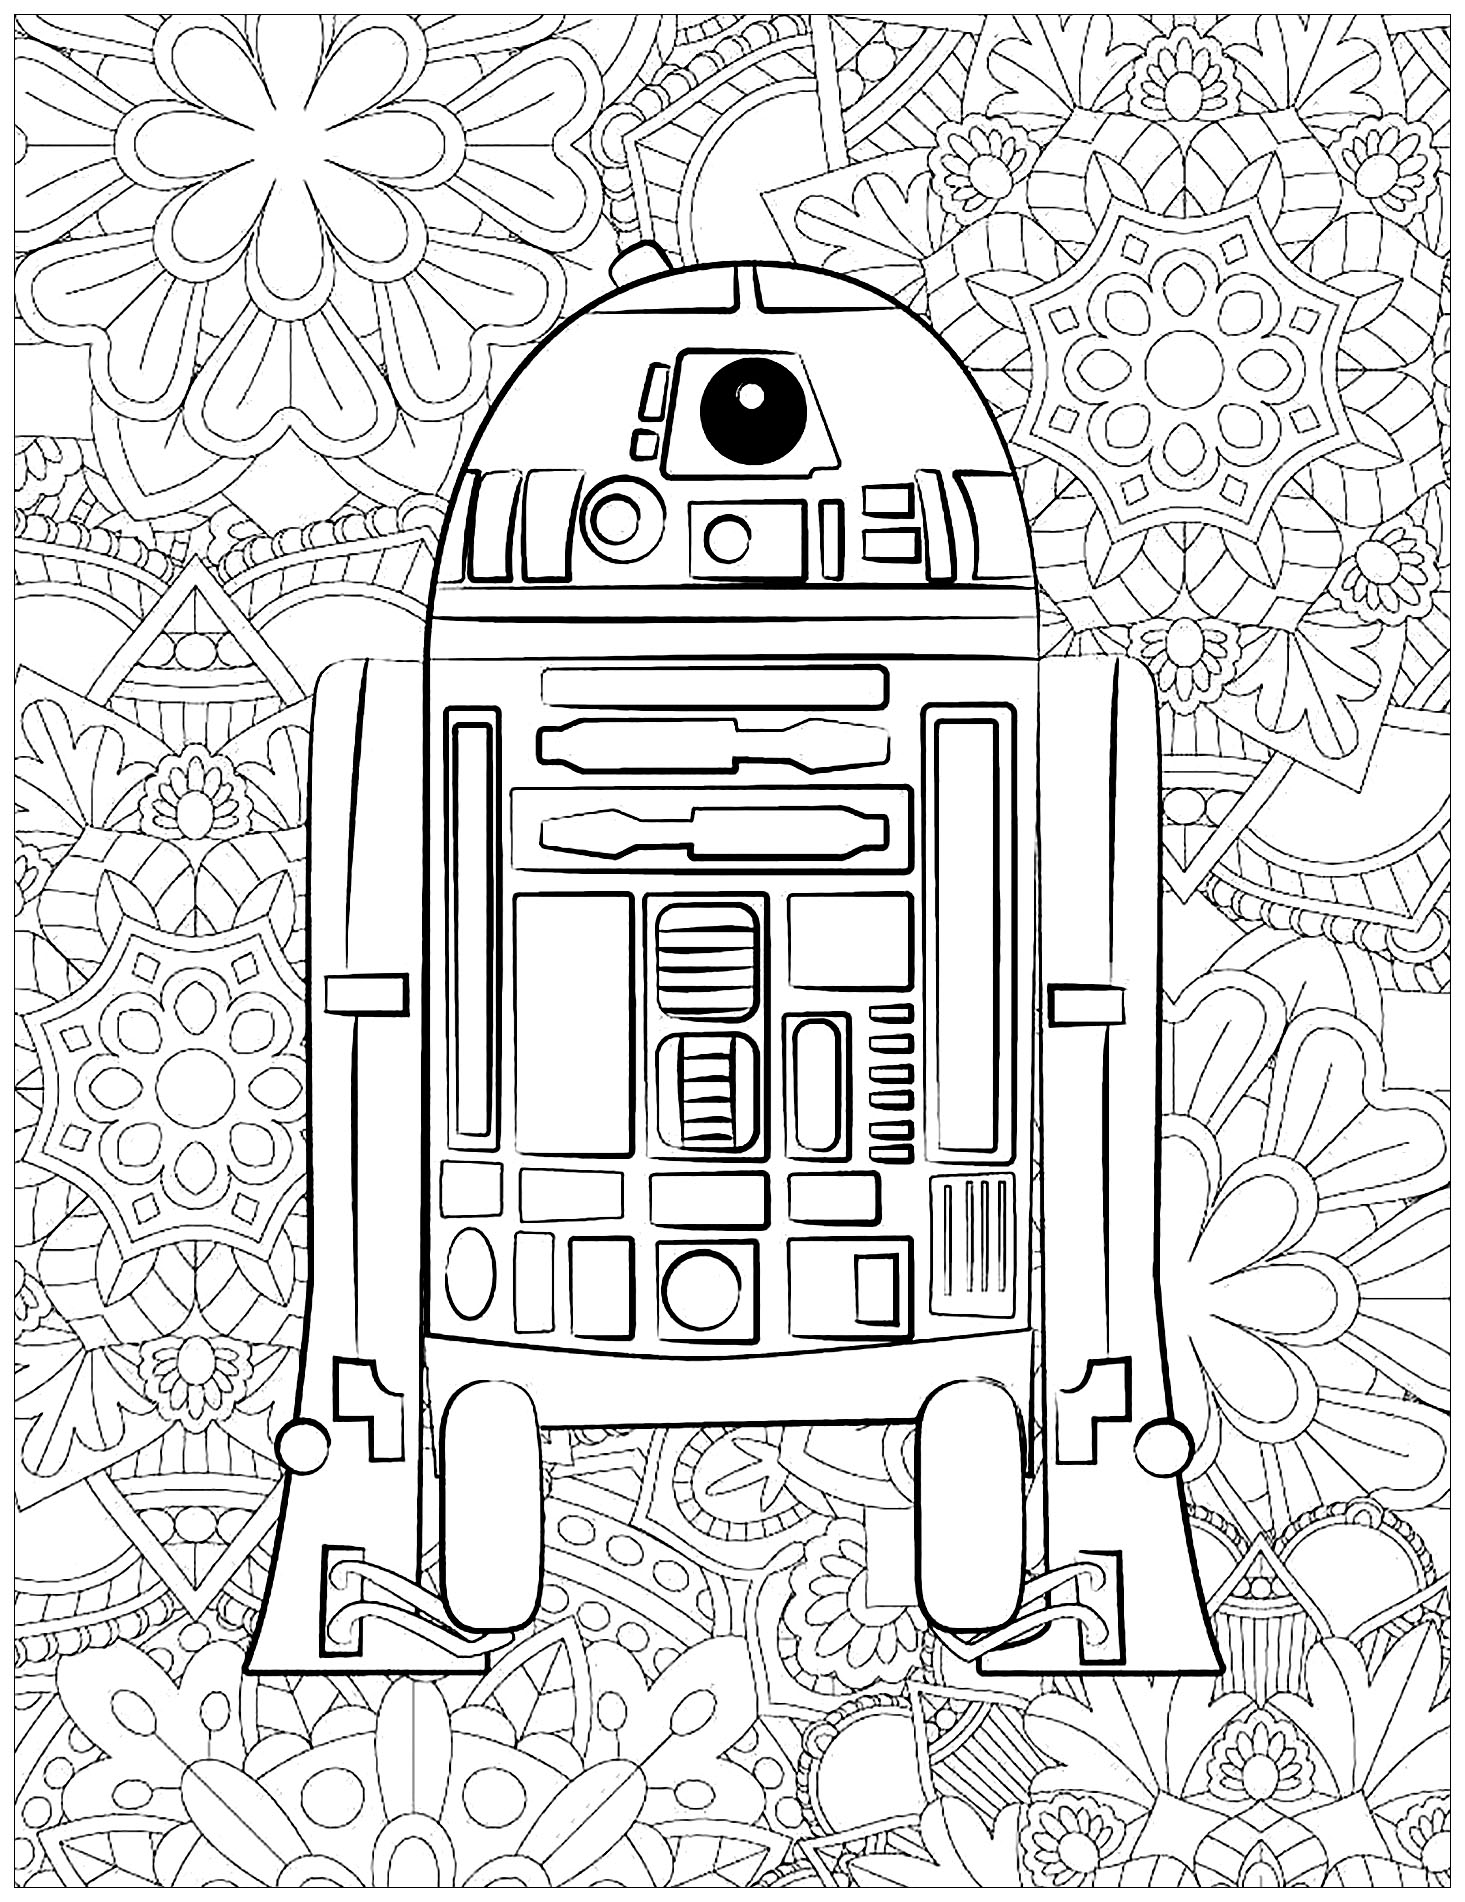 star wars coloring pages printable storm trooper coloring page in 2020 star wars coloring coloring pages star wars printable